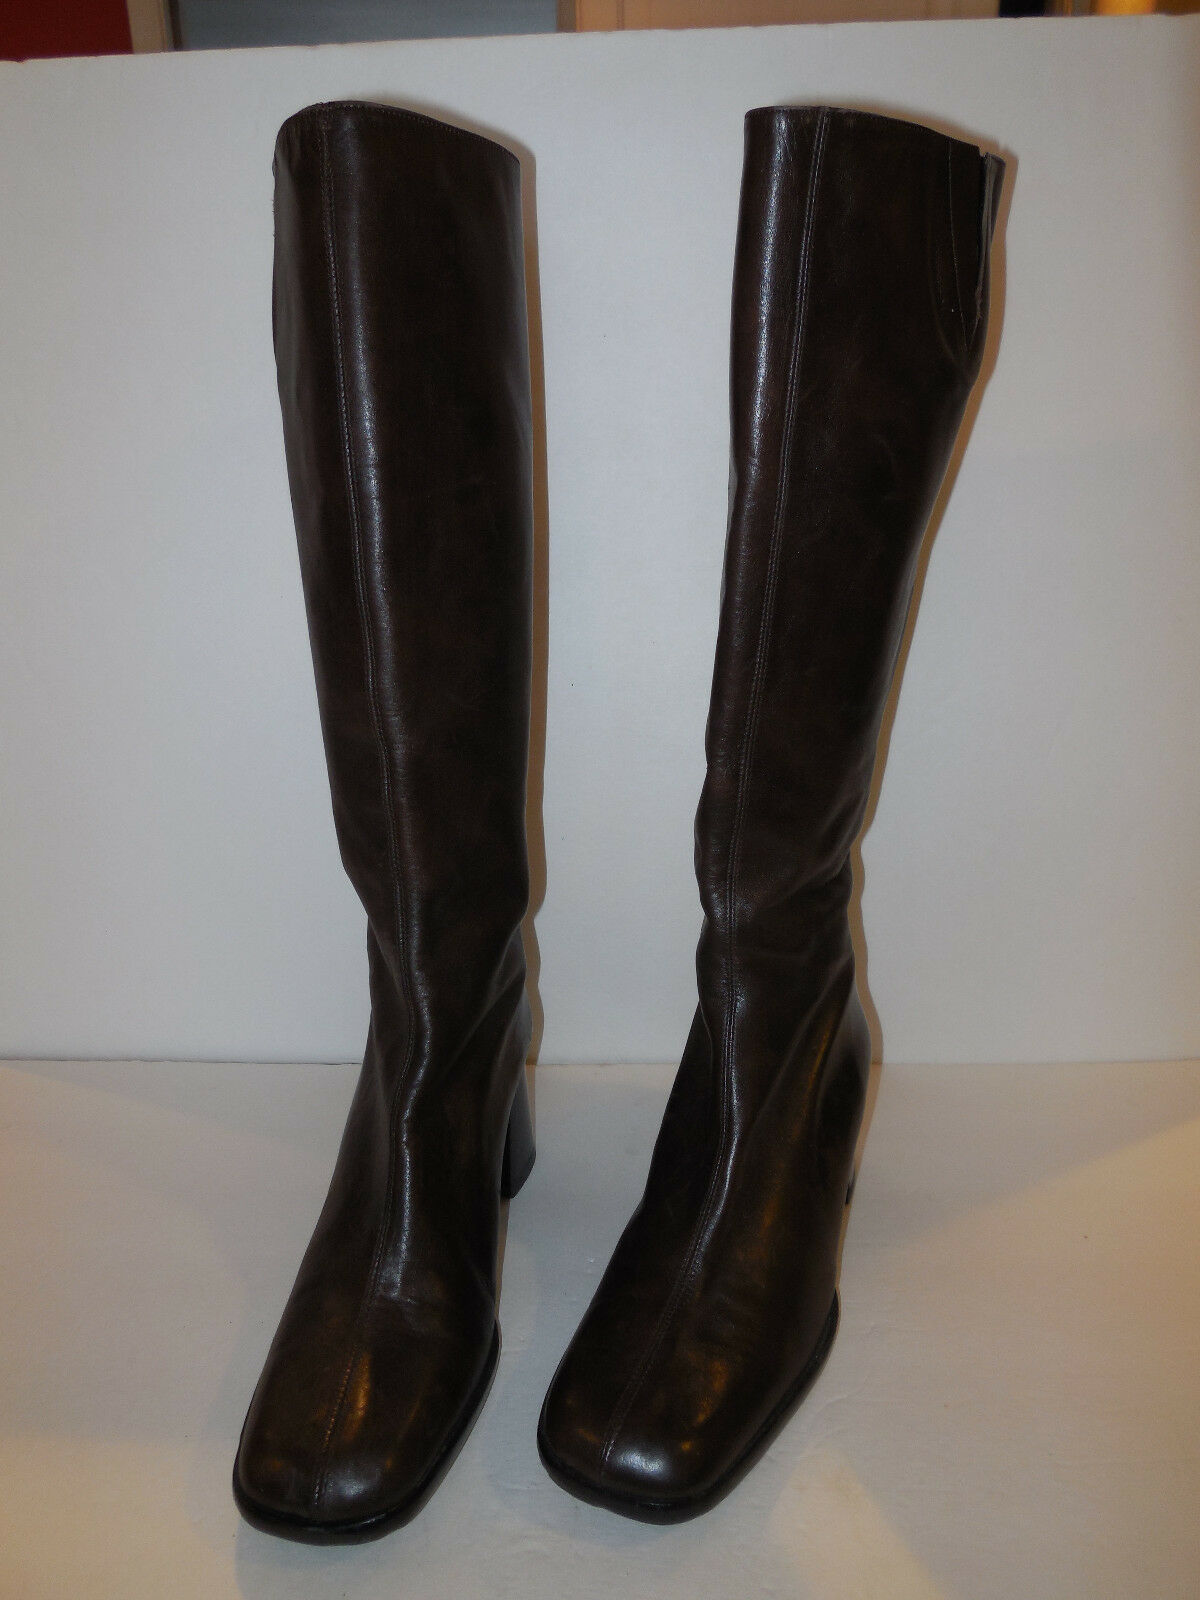 CLAUDIA CIUTI LADIES DARK BROWN LEATHER KNEE HIGH BOOTS SIZE 6.5 M MADE IN ITALY